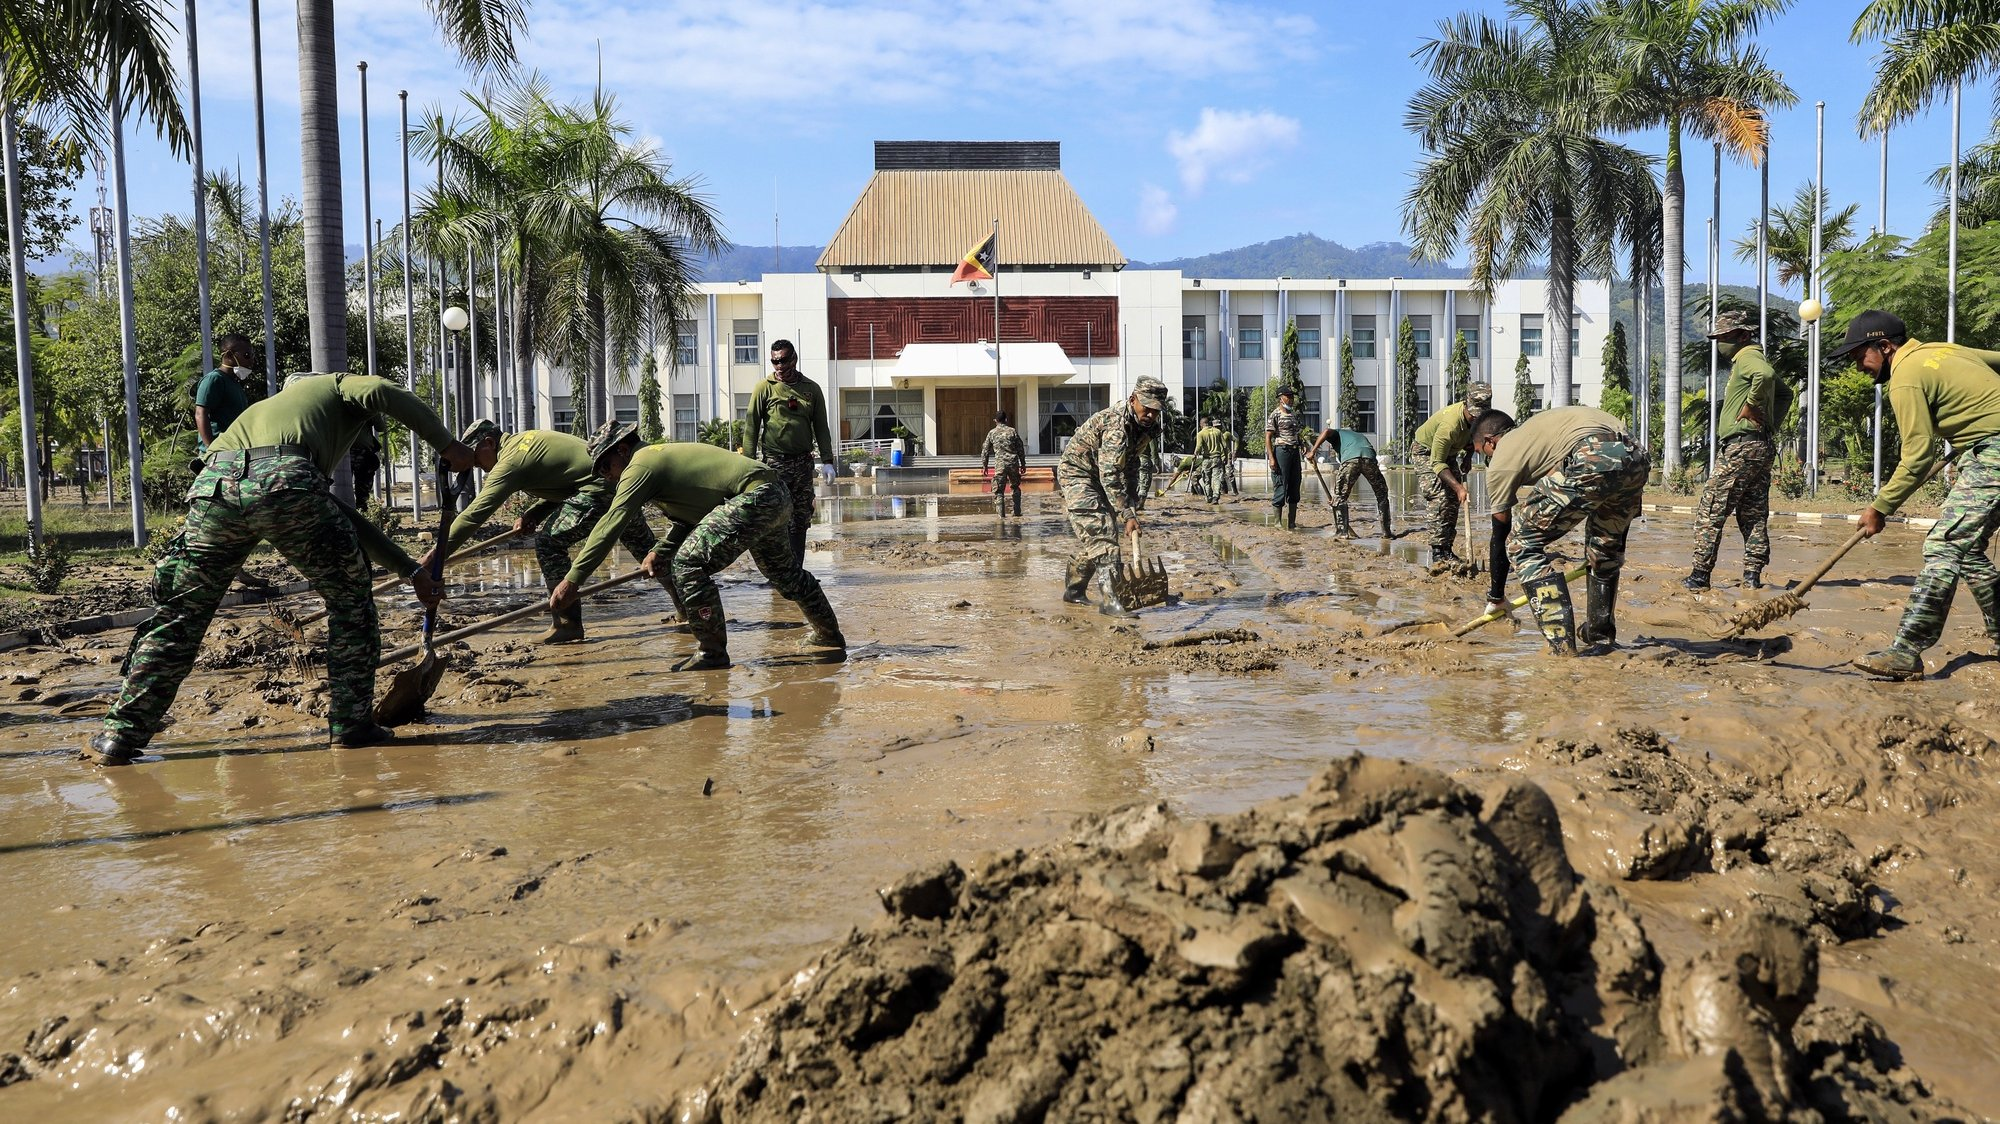 epa09121775 East Timorese military personnel clean up the mud outside the presidential office in the aftermath of floods in Dili, East Timor, also known as Timor Leste, 08 April 2021. More than 100 people were killed and dozens went missing in Indonesia and East Timor as floods and landslides caused by torrential rains hit over the weekend.  EPA/ANTONIO DASIPARU